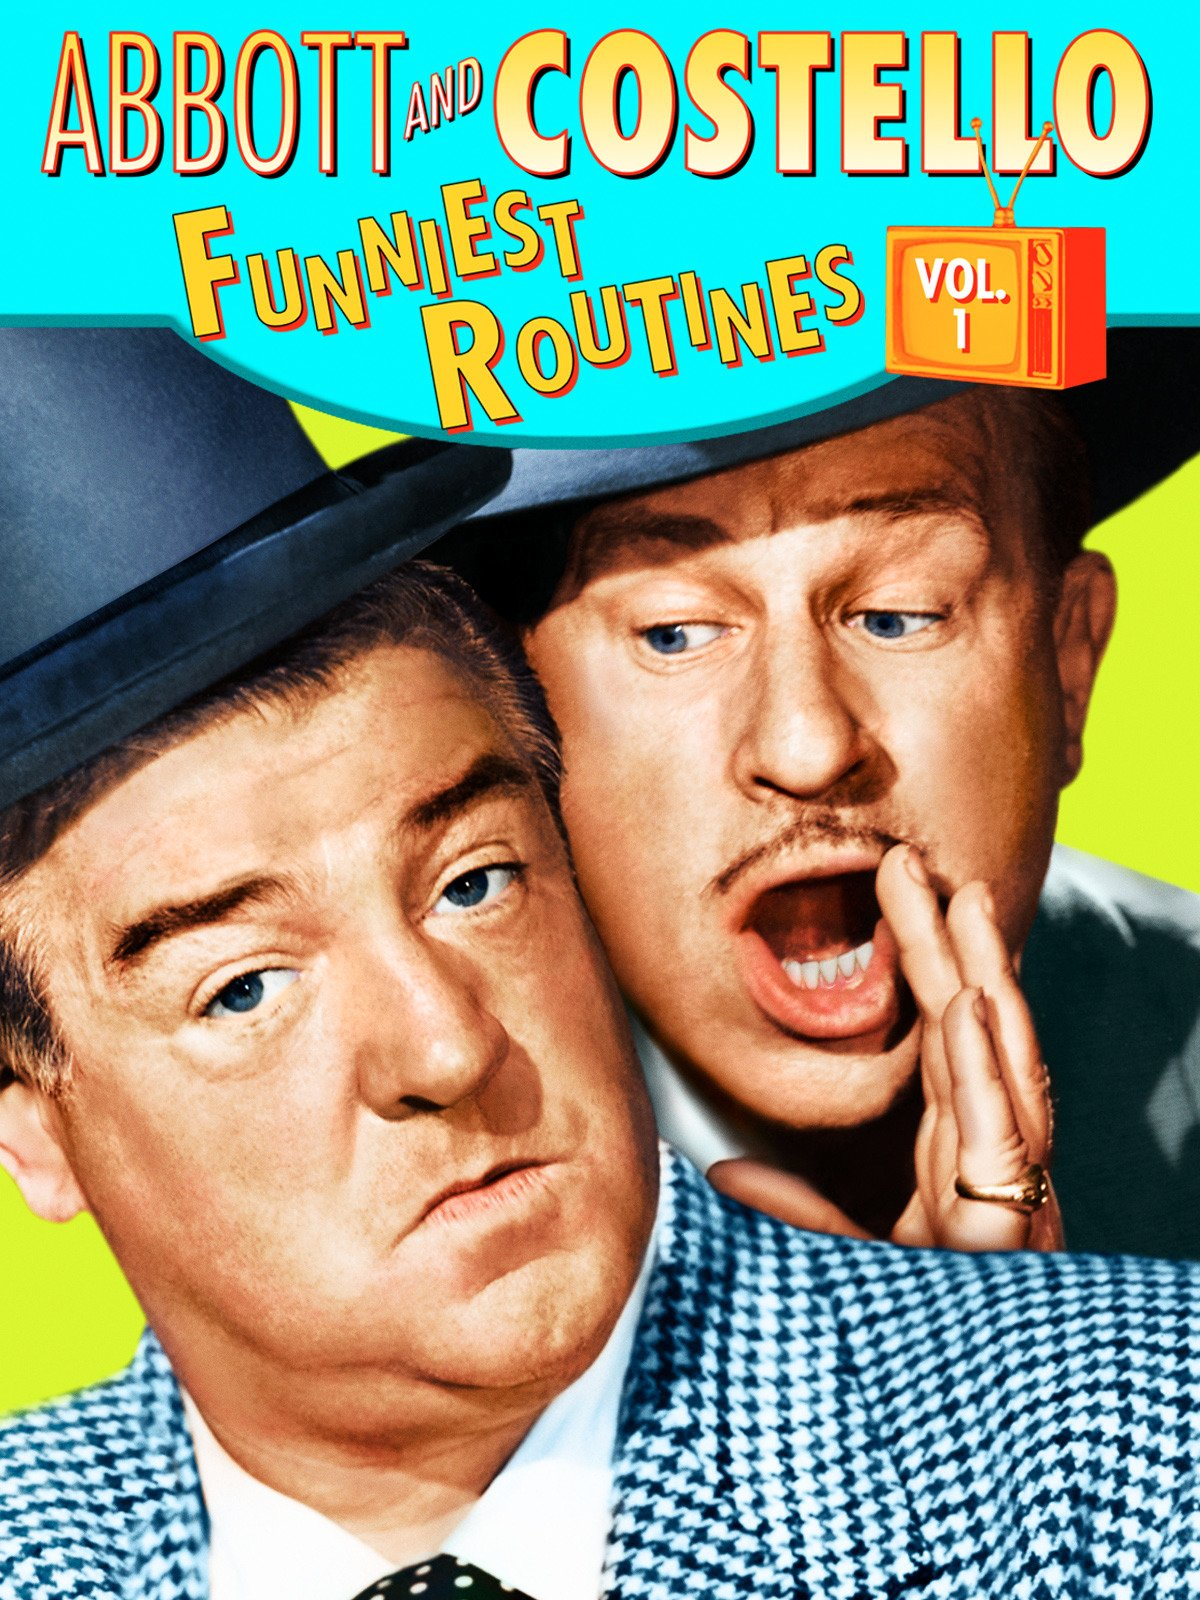 Abbott & Costello: Funniest Routines Volume 1